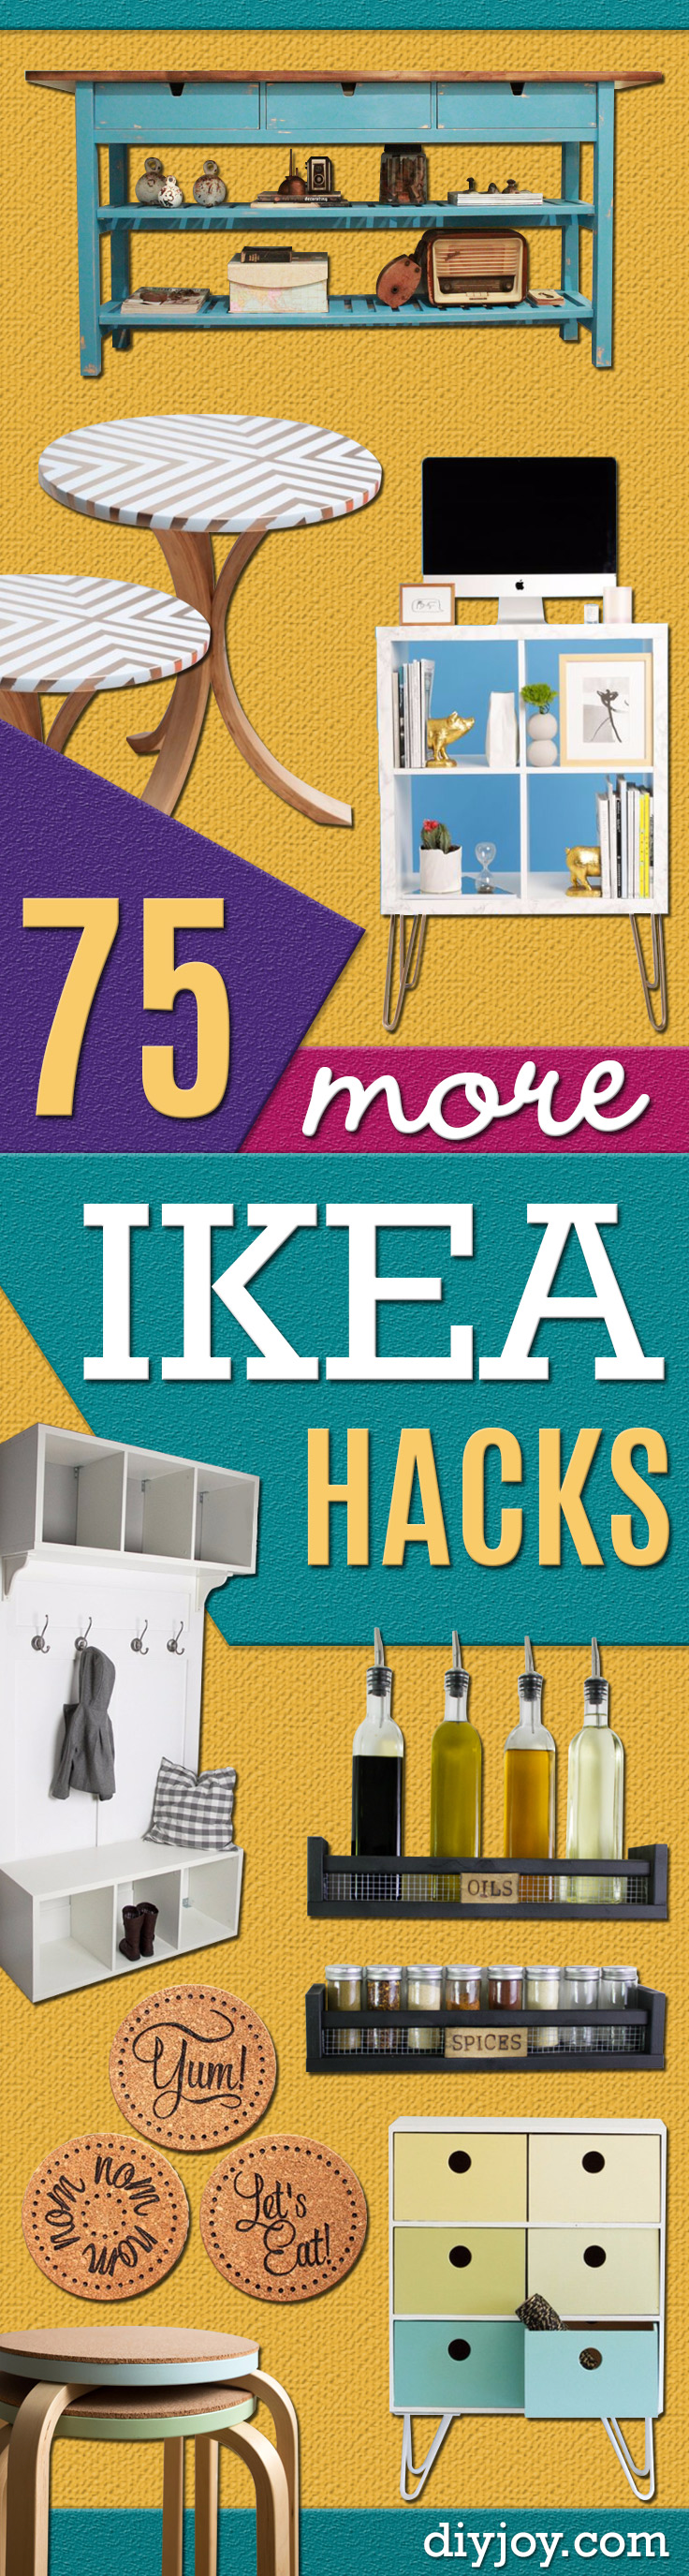 Best IKEA Hacks and DIY Hack Ideas for Furniture Projects and Home Decor from IKEA -Creative IKEA Hack Tutorials for DIY Platform Bed, Desk, Vanity, Dresser, Coffee Table, Storage and Kitchen, Bedroom and Bathroom Decor